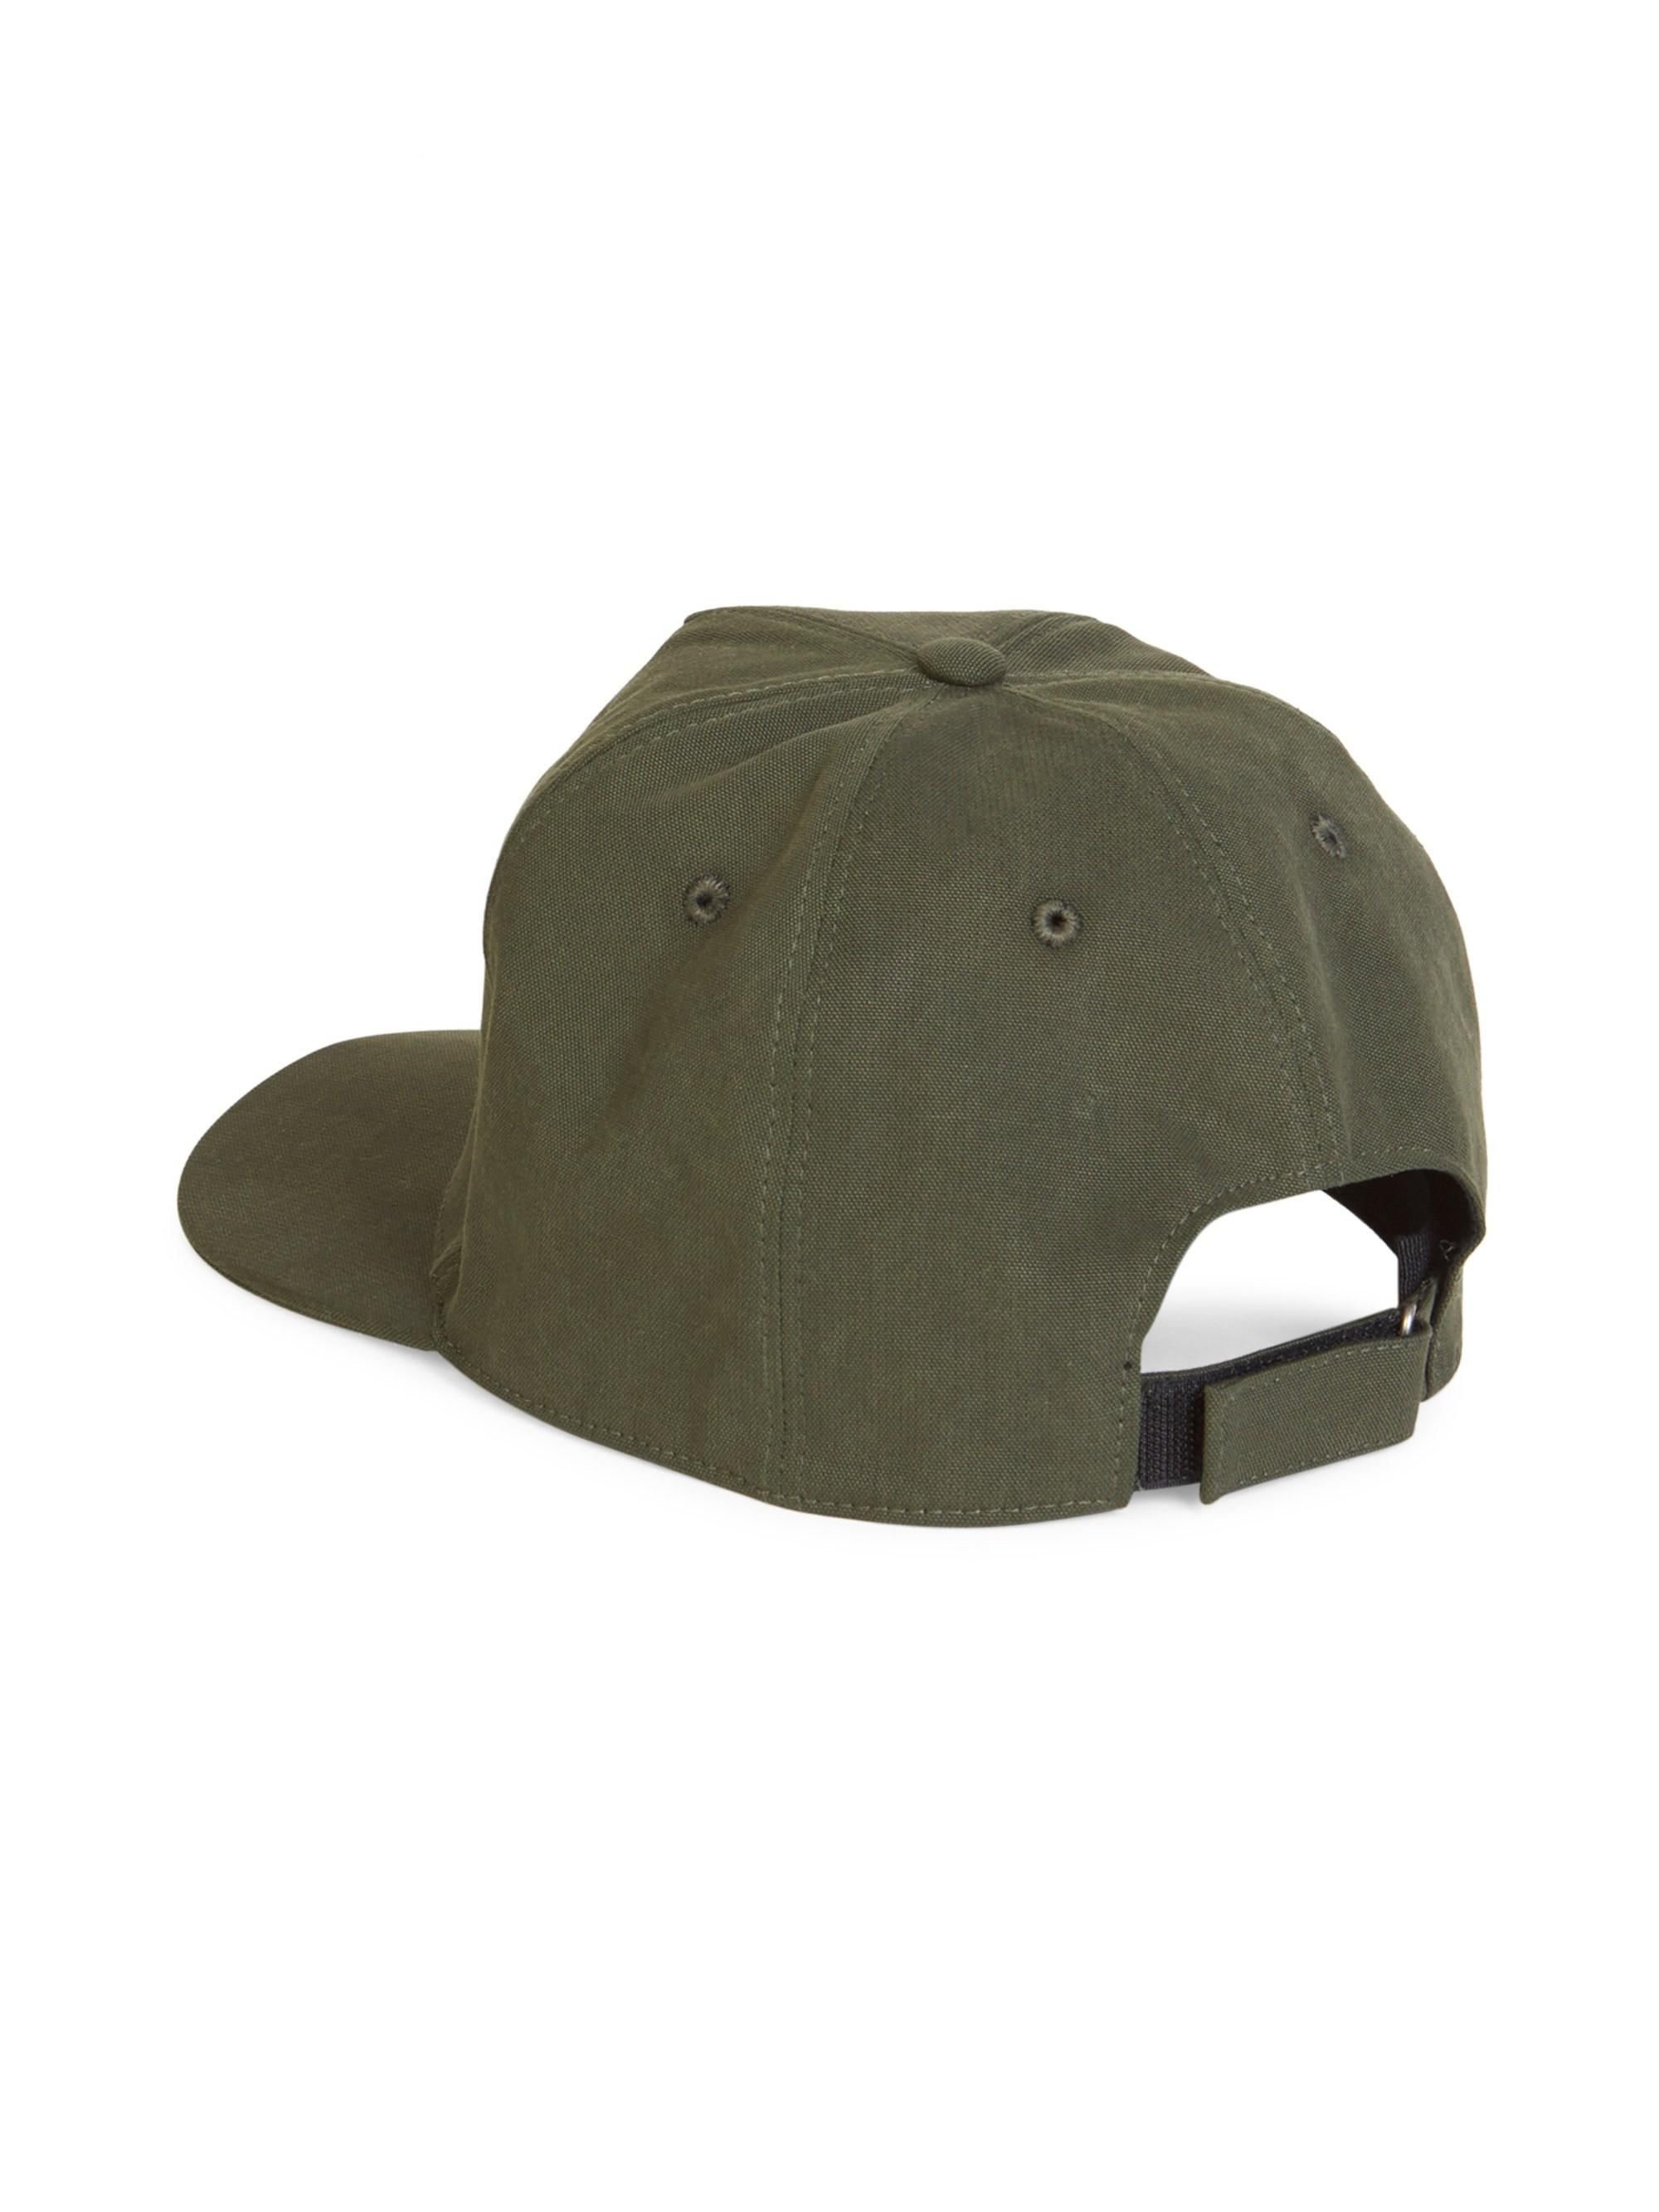 0c9d9d4a113 Givenchy - Green Embroidered Cotton Baseball Cap for Men - Lyst. View  fullscreen